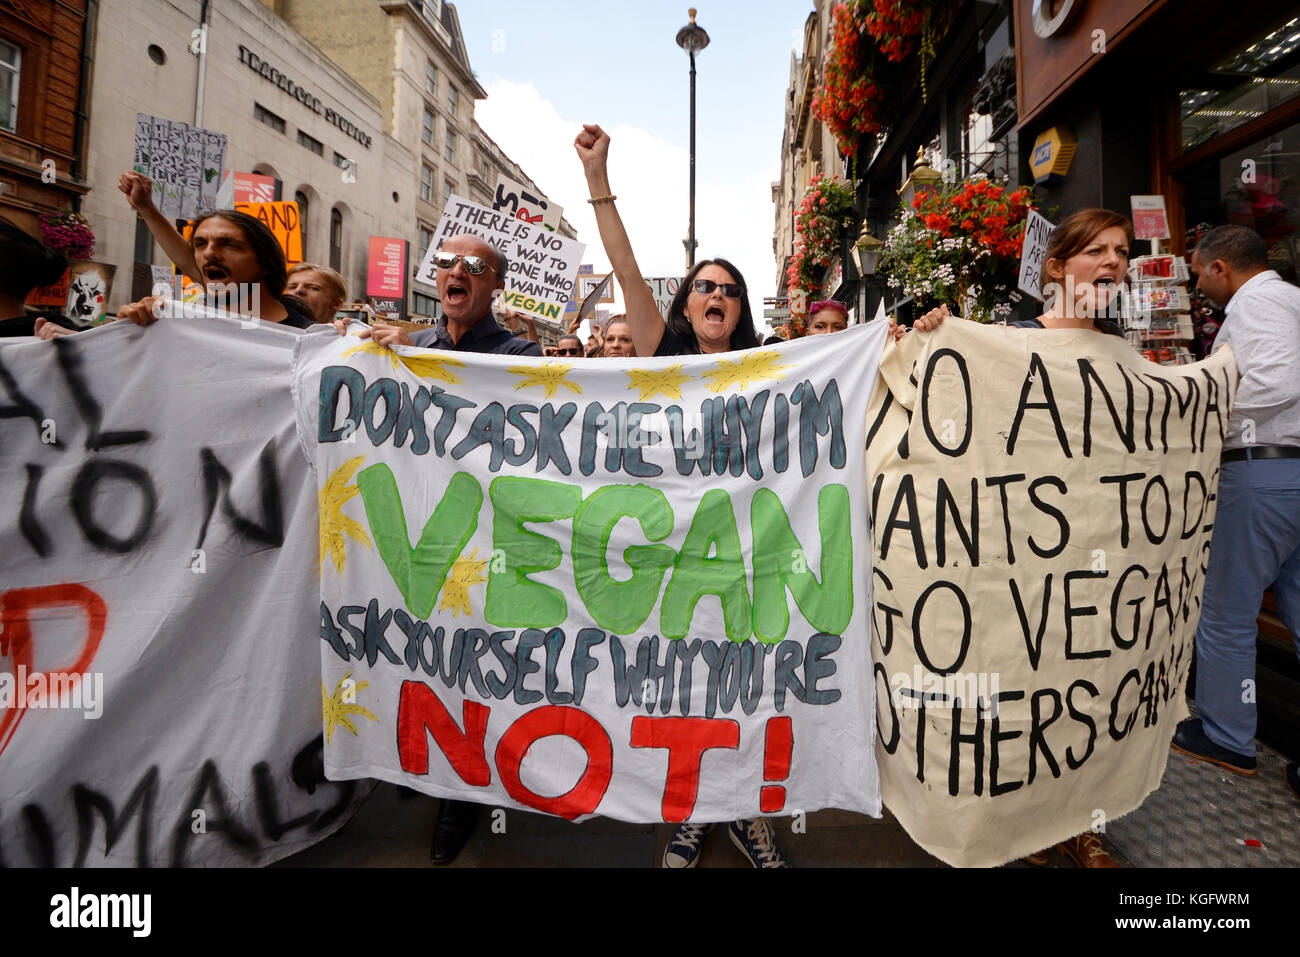 vegan-activists-shouting-and-chanting-while-marching-in-whitehall-KGFWRM.jpg